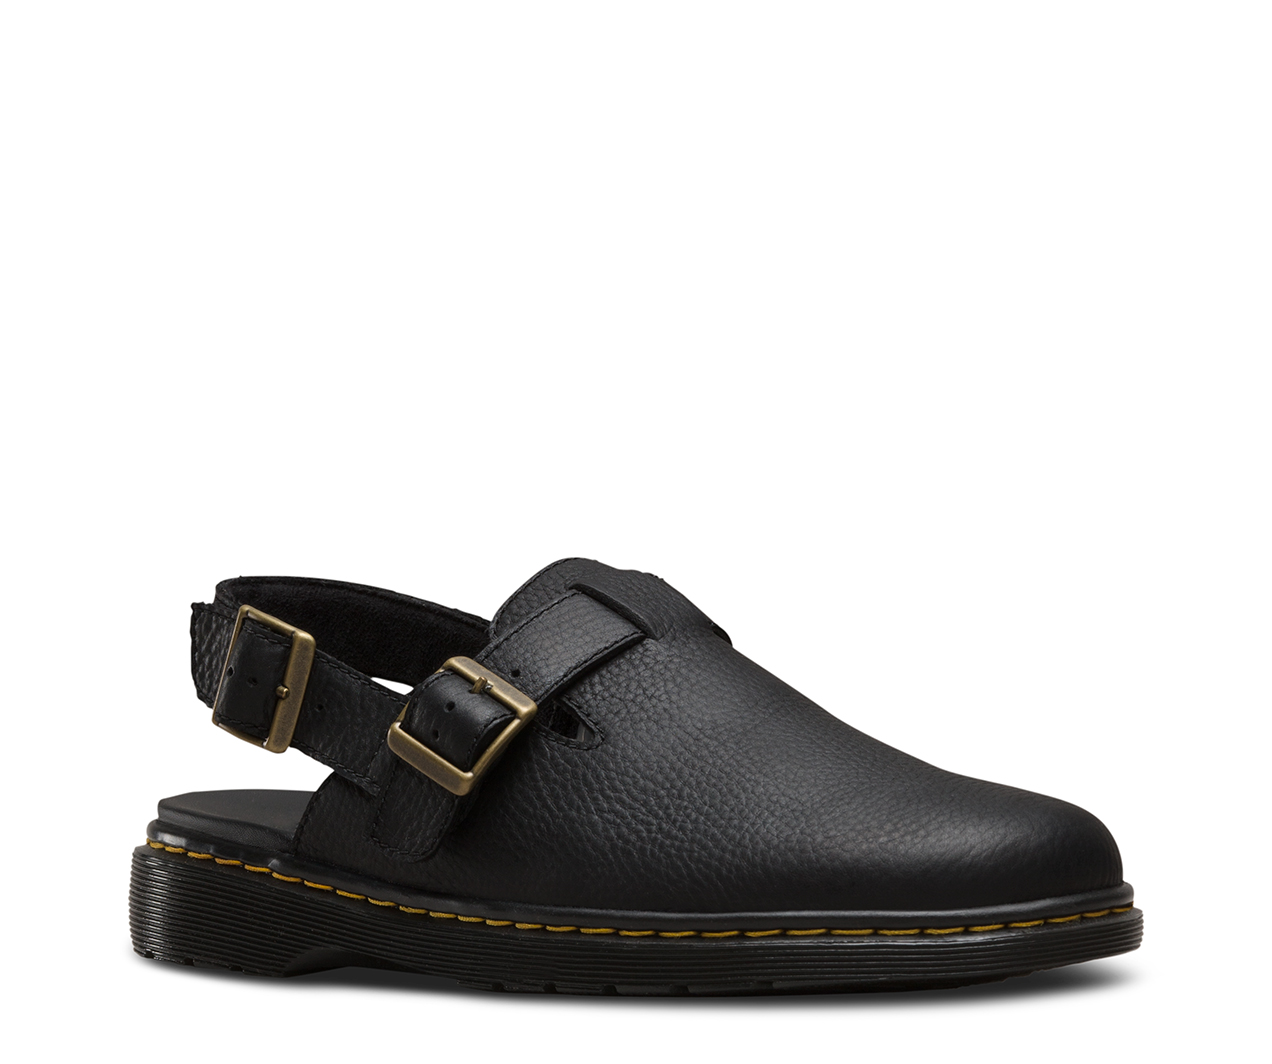 Mens Jorge Rve Closed Toe Sandals Dr. Martens FxTBUTCHA8